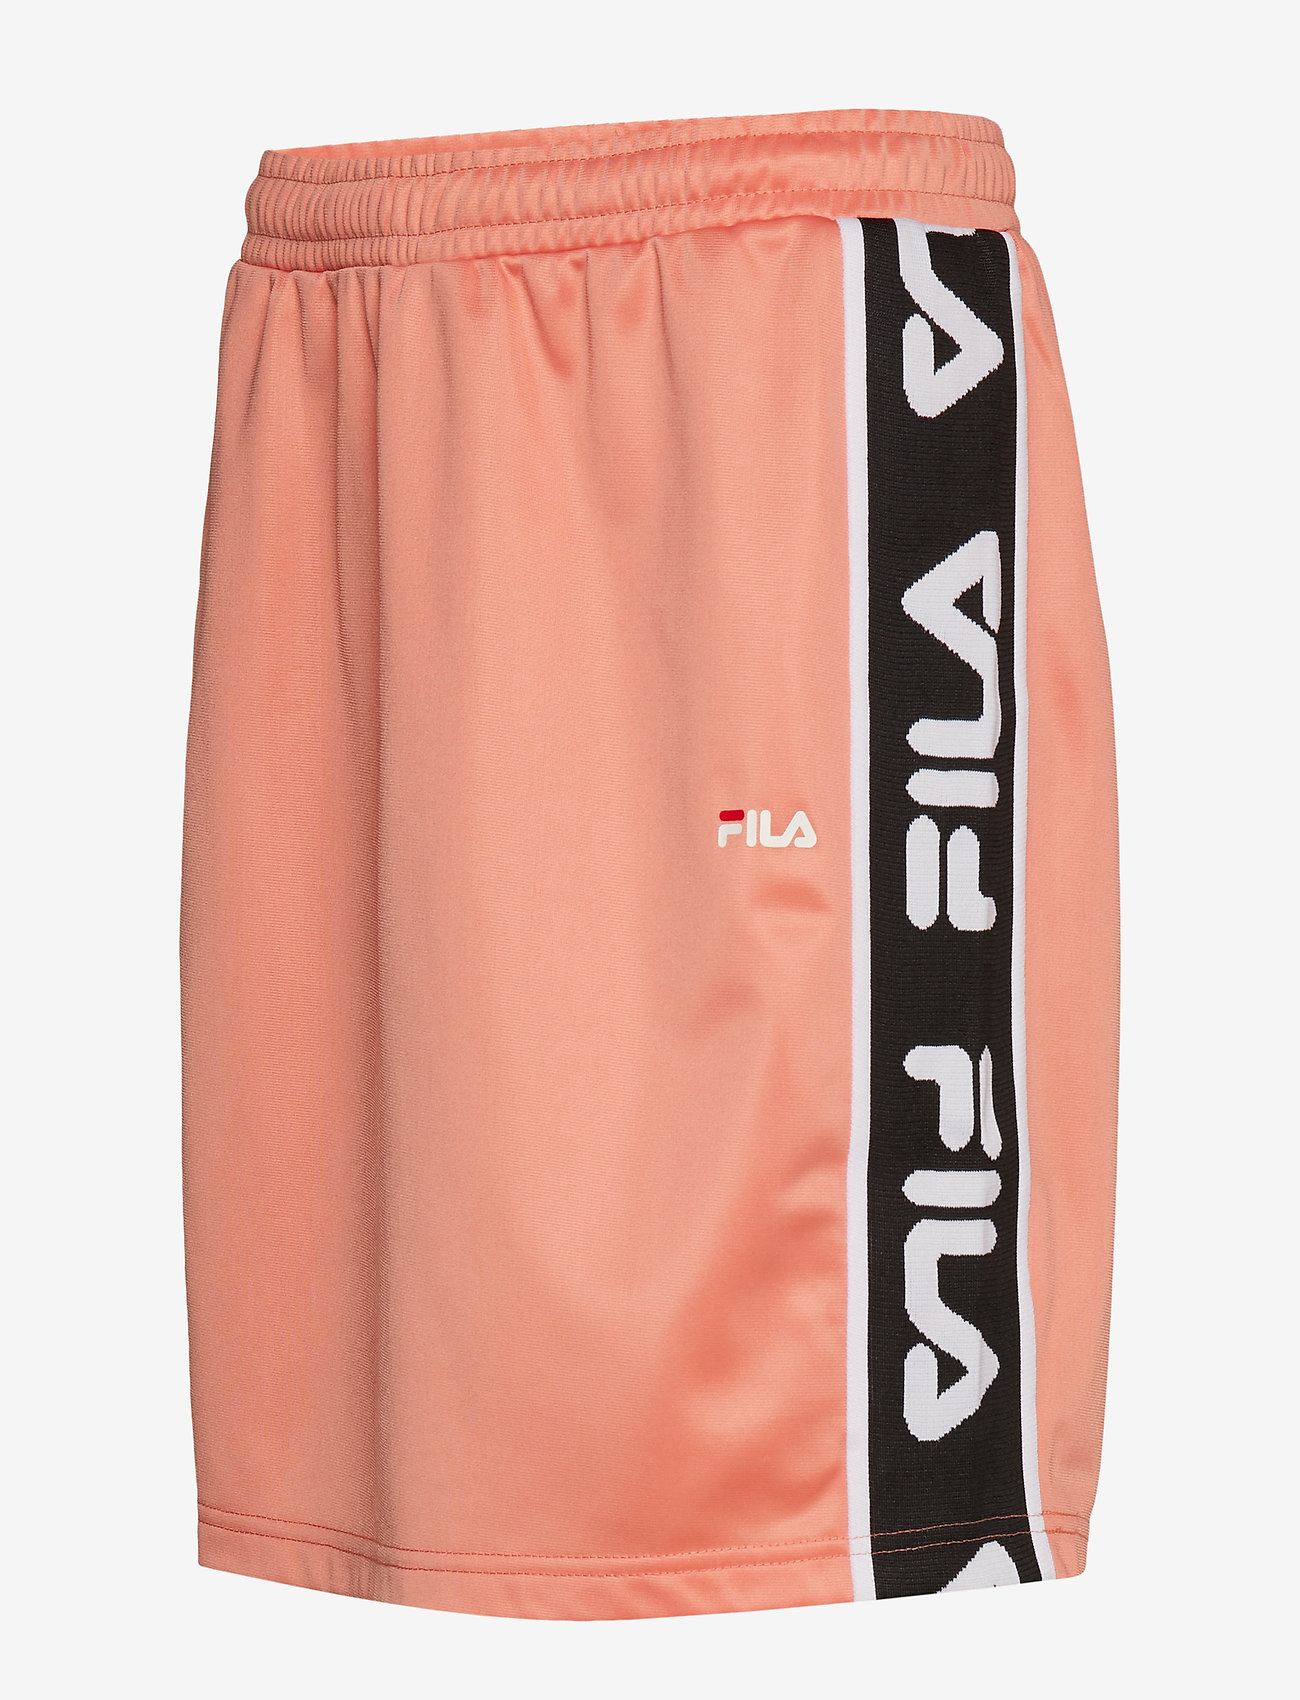 Women Tarala Skirt (Lobster Bisque) (350 kr) - FILA